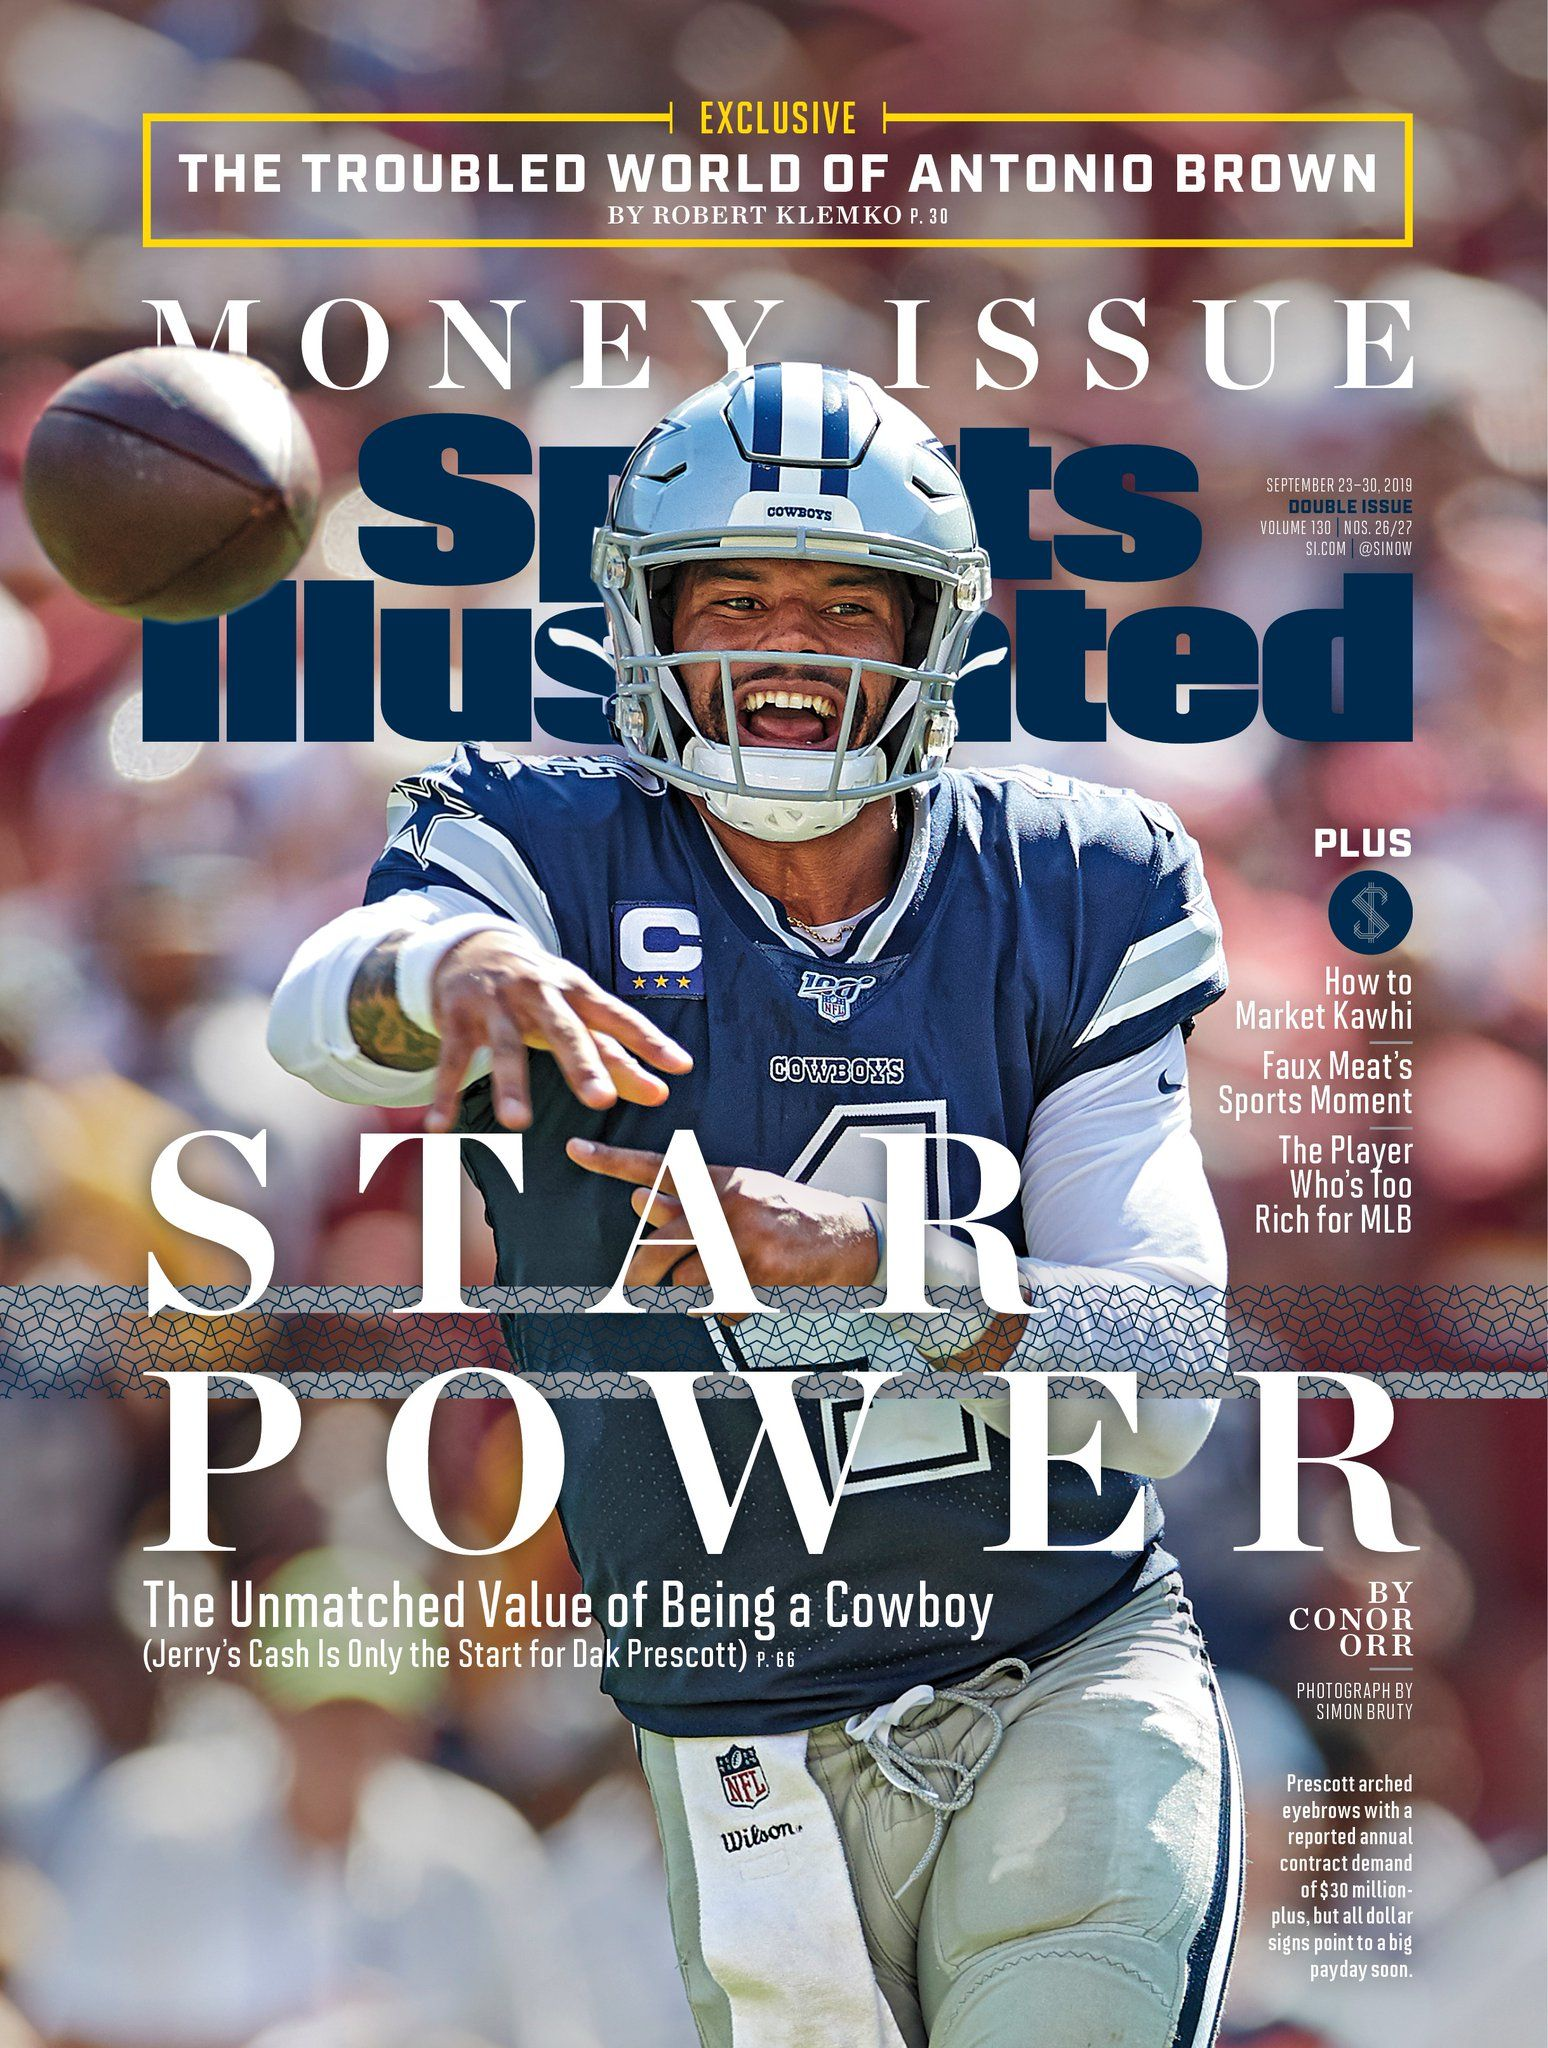 Dallas Cowboys Bleacher Report Latest News Scores Is The Perfect High Quality Nfl Superbowl Wallpap Dallas Cowboys Sports Illustrated Sports Illustrated Covers